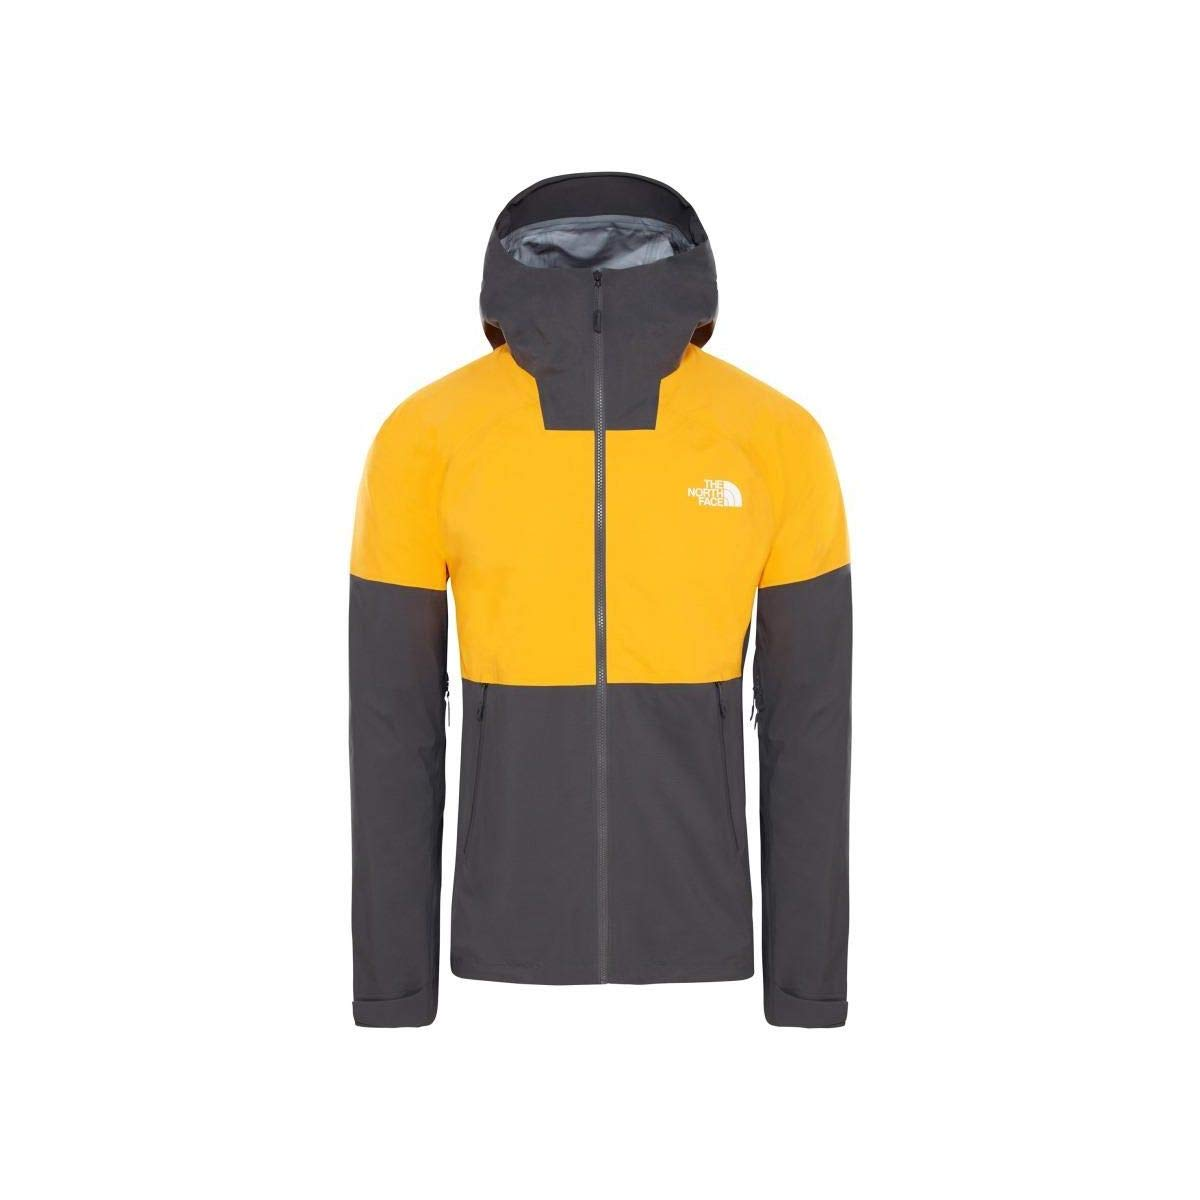 THE NORTH FACE M IMPENDOR C-Knit Jacket